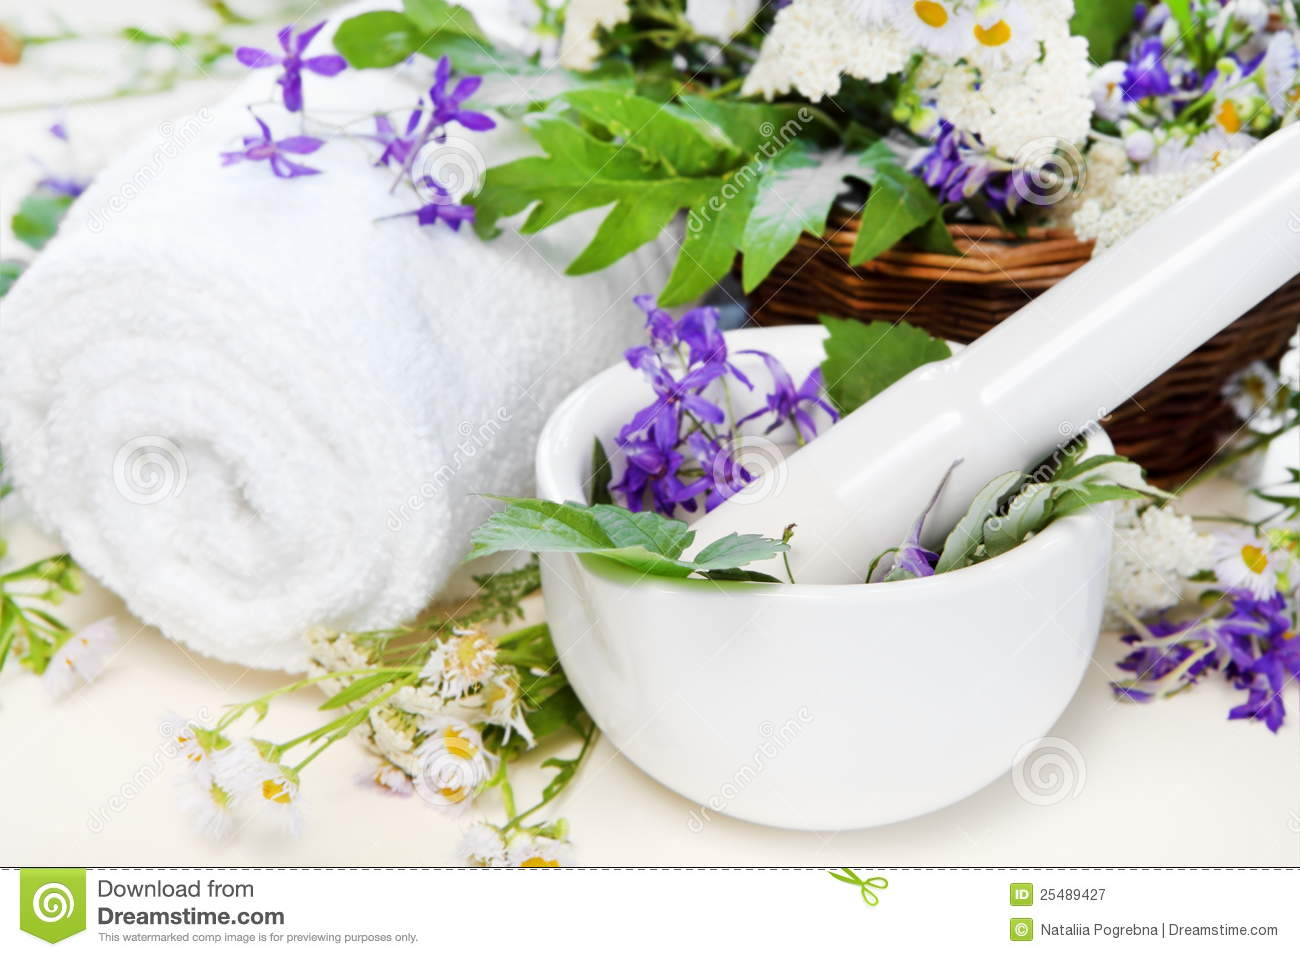 herbal spa & massage review happy ending Costa Mesa, California